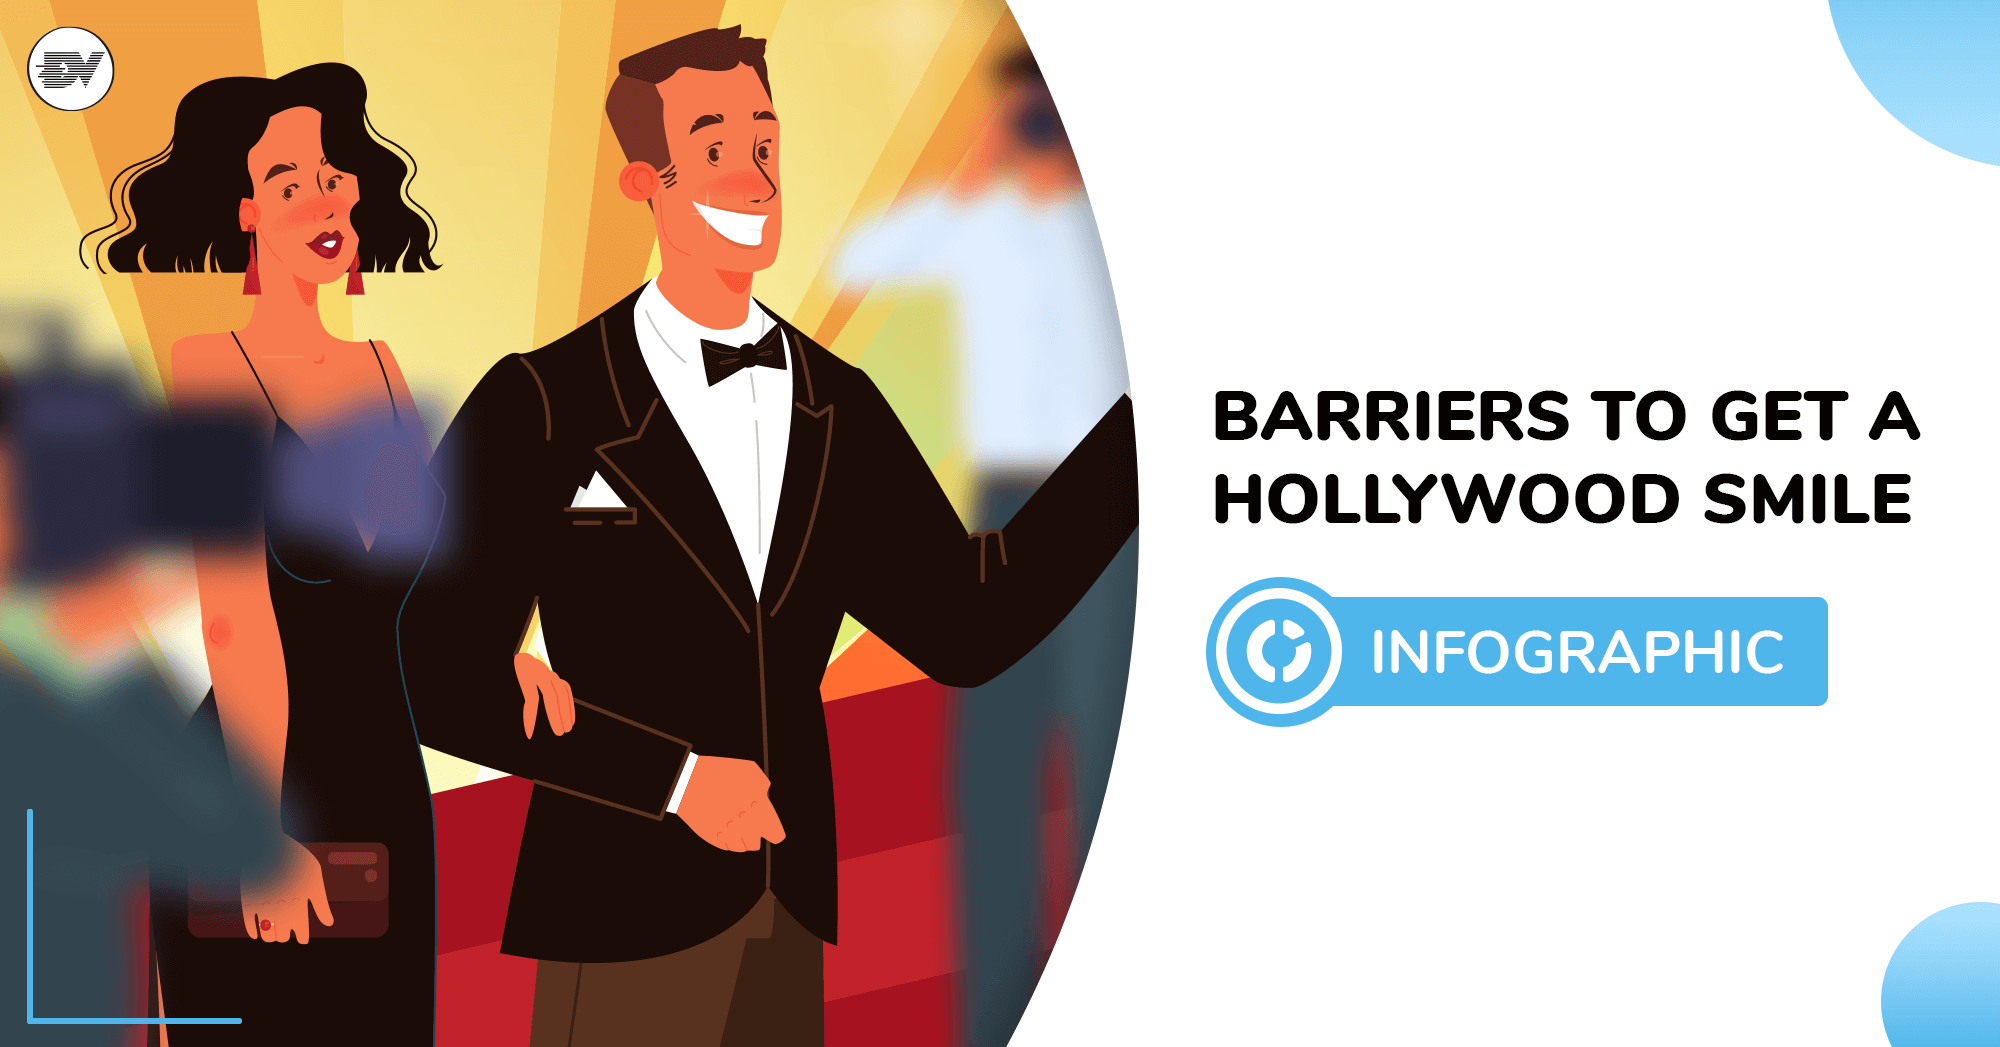 Hollywood smile infographic soc